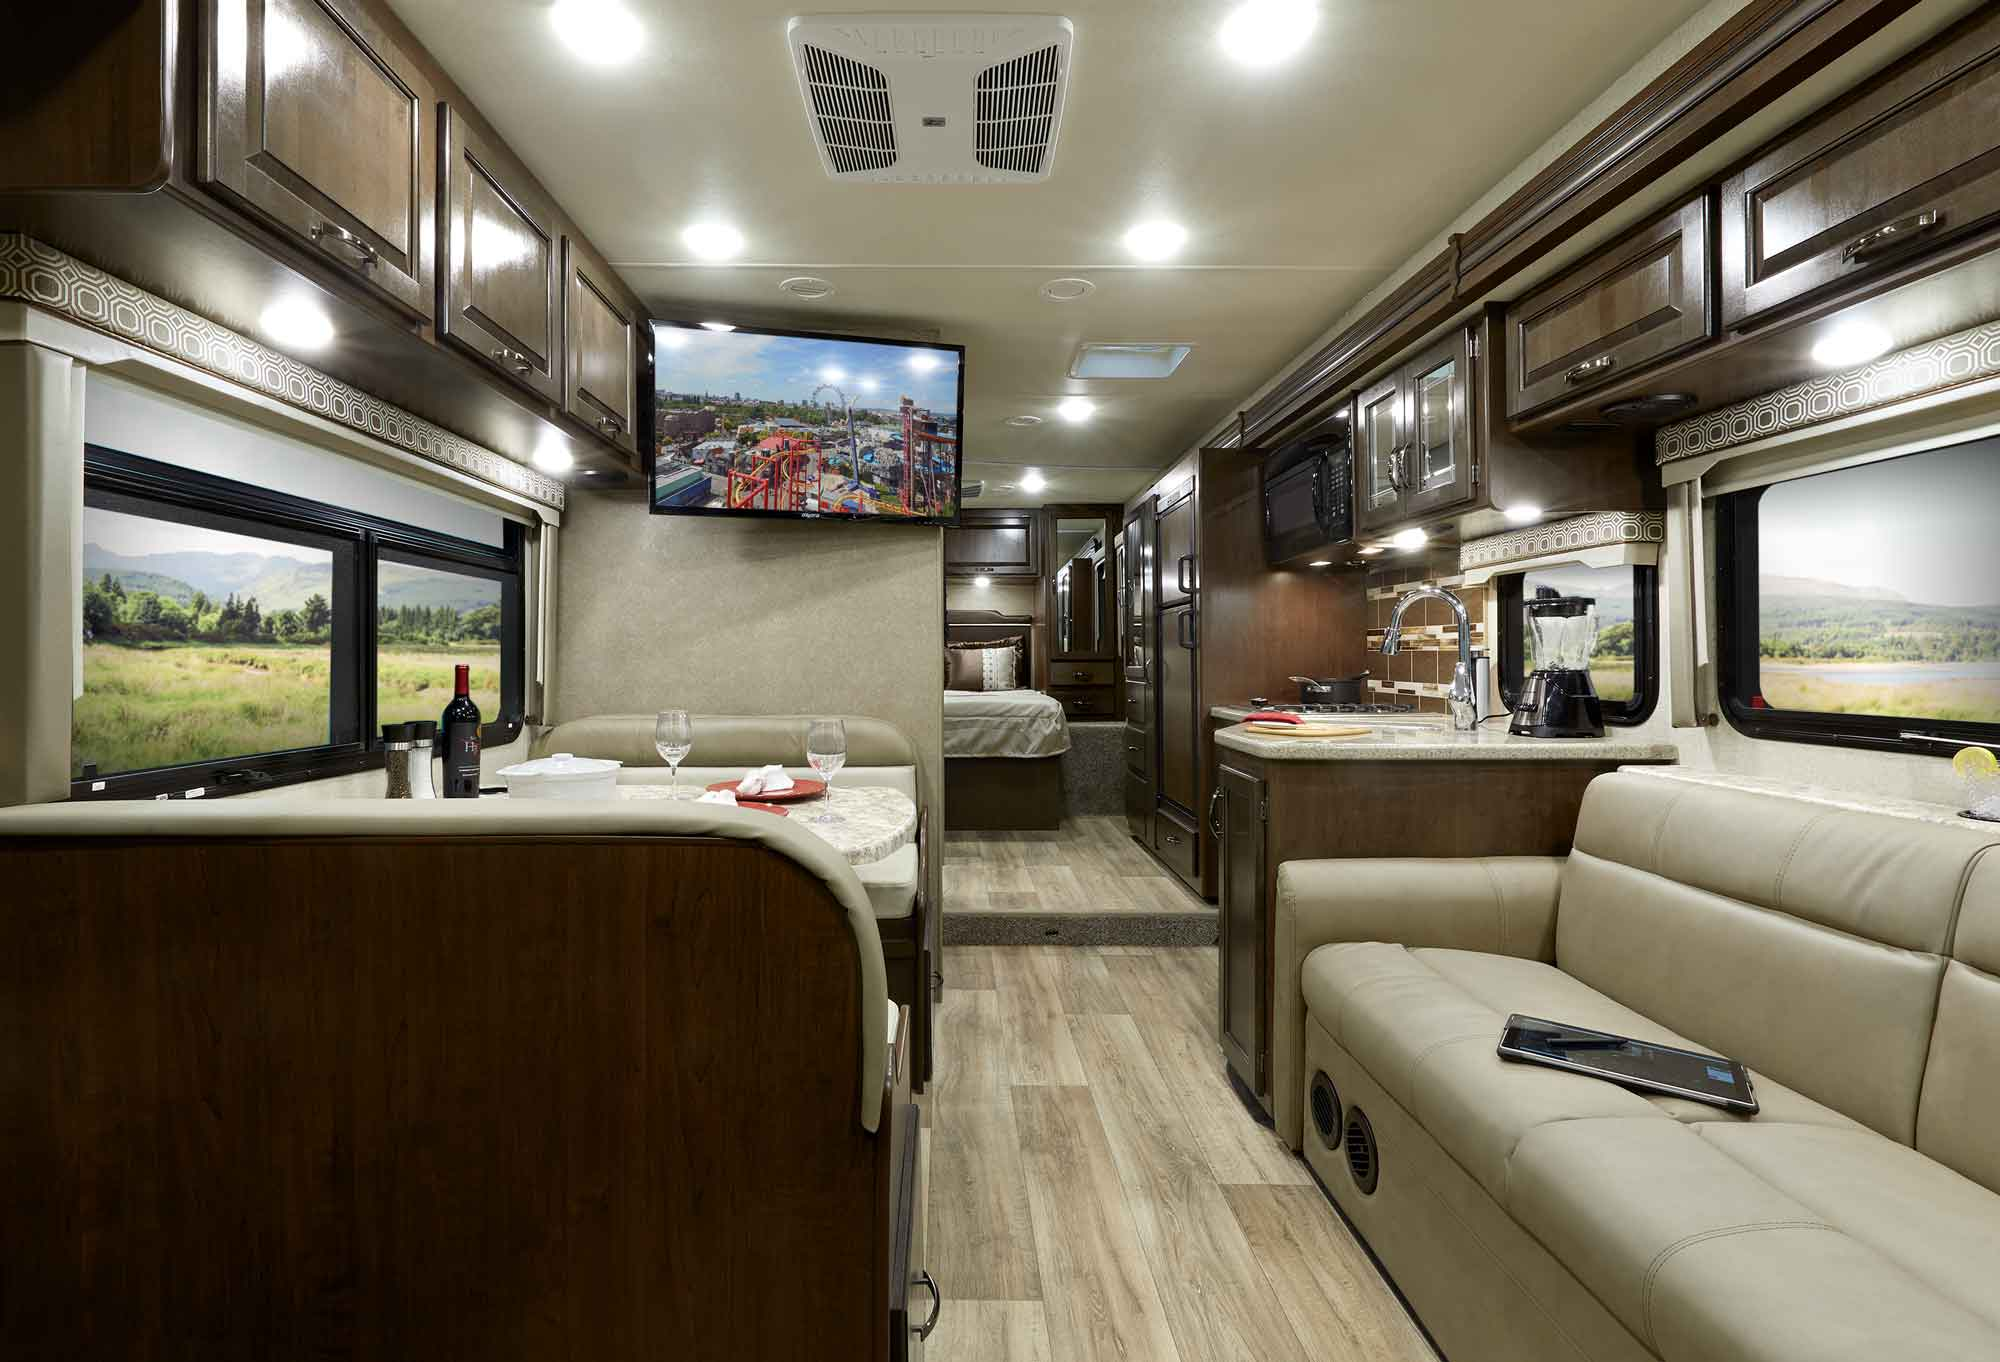 Four Winds Motorhome Baton Rouge LA